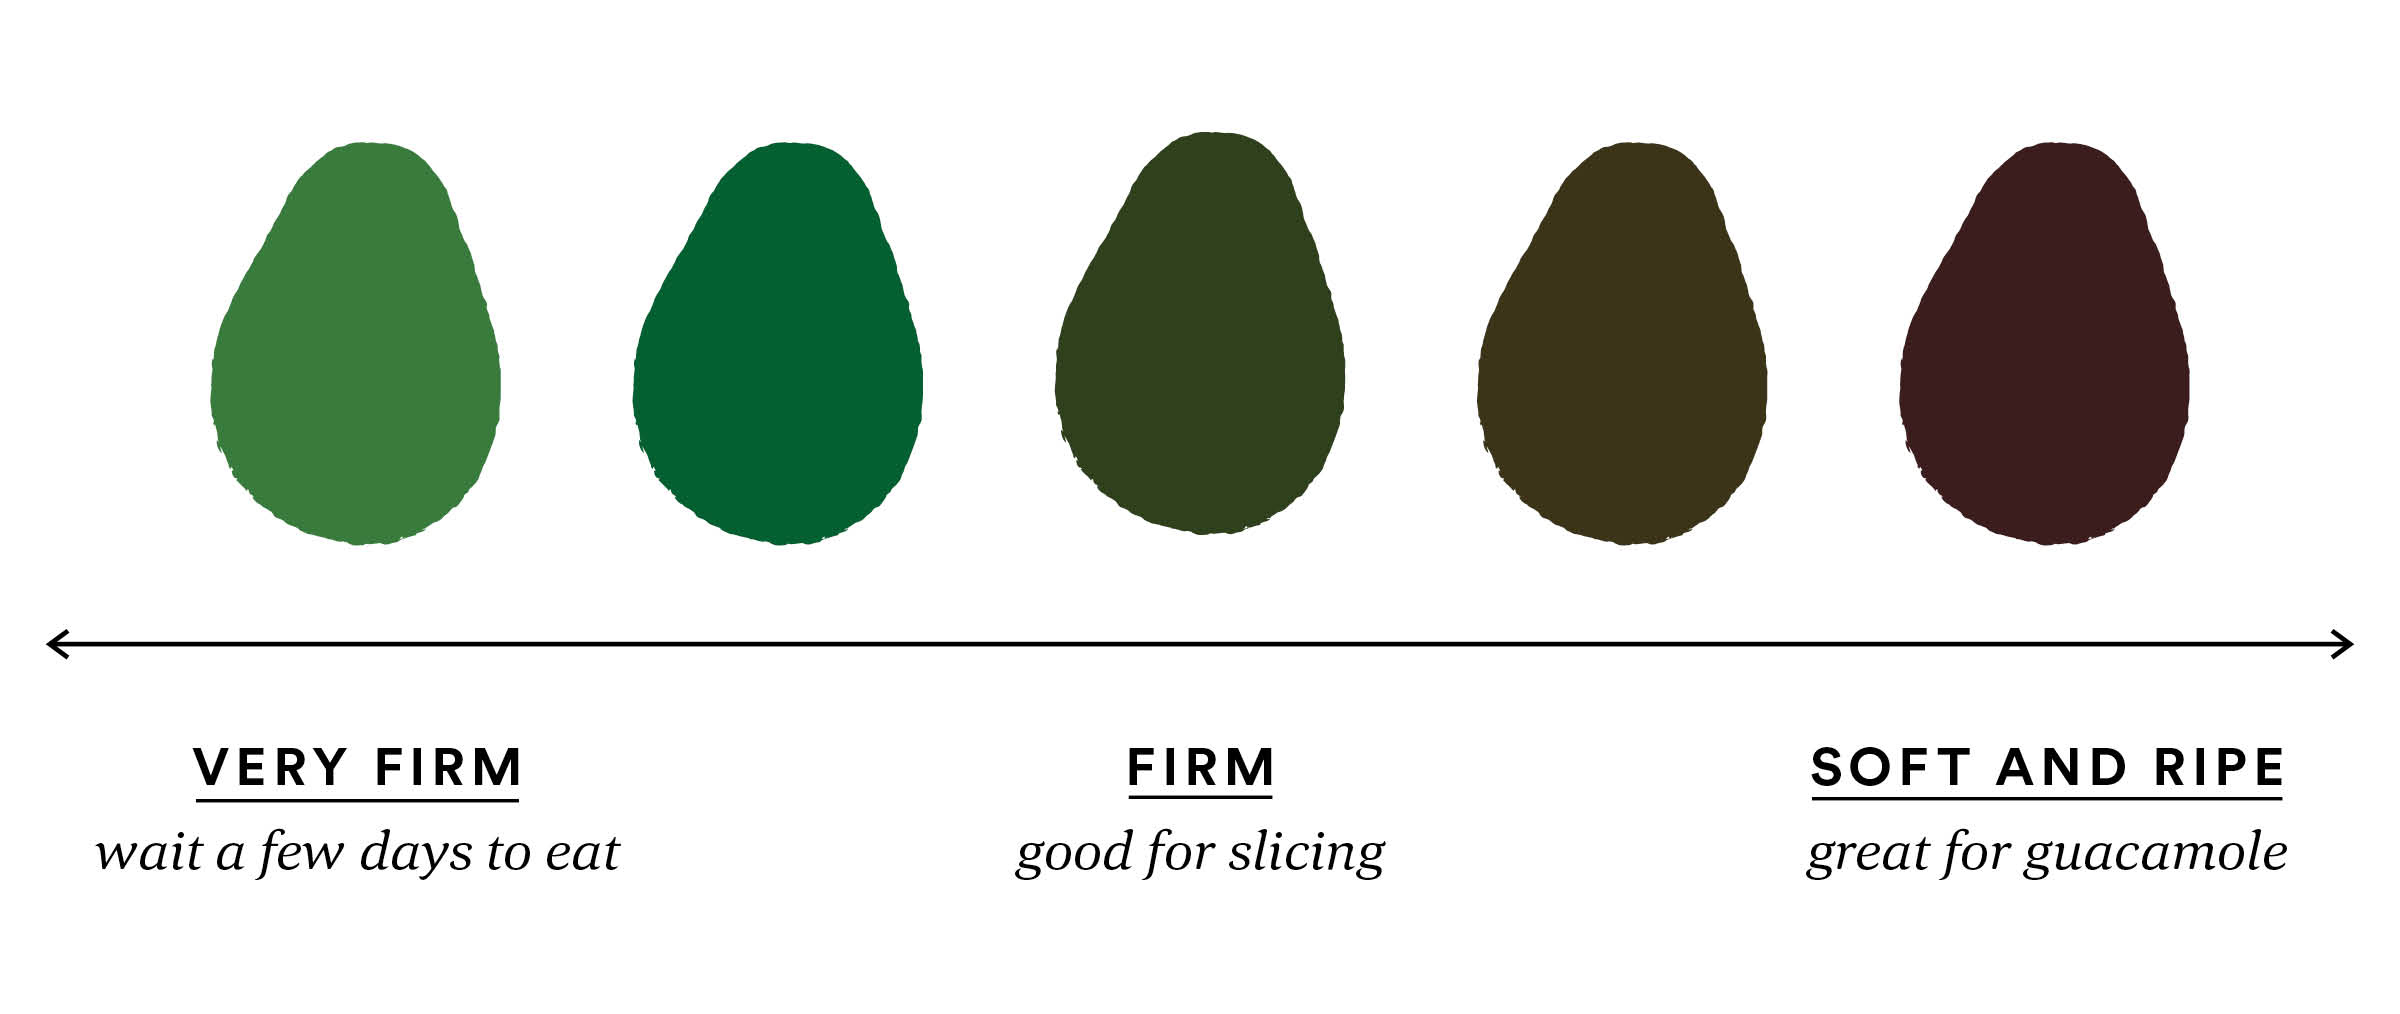 Avocado Firmness scale,  Very Firm Wait a few days to eat, Firm good for slicing, Soft and Ripe great for Guacamole